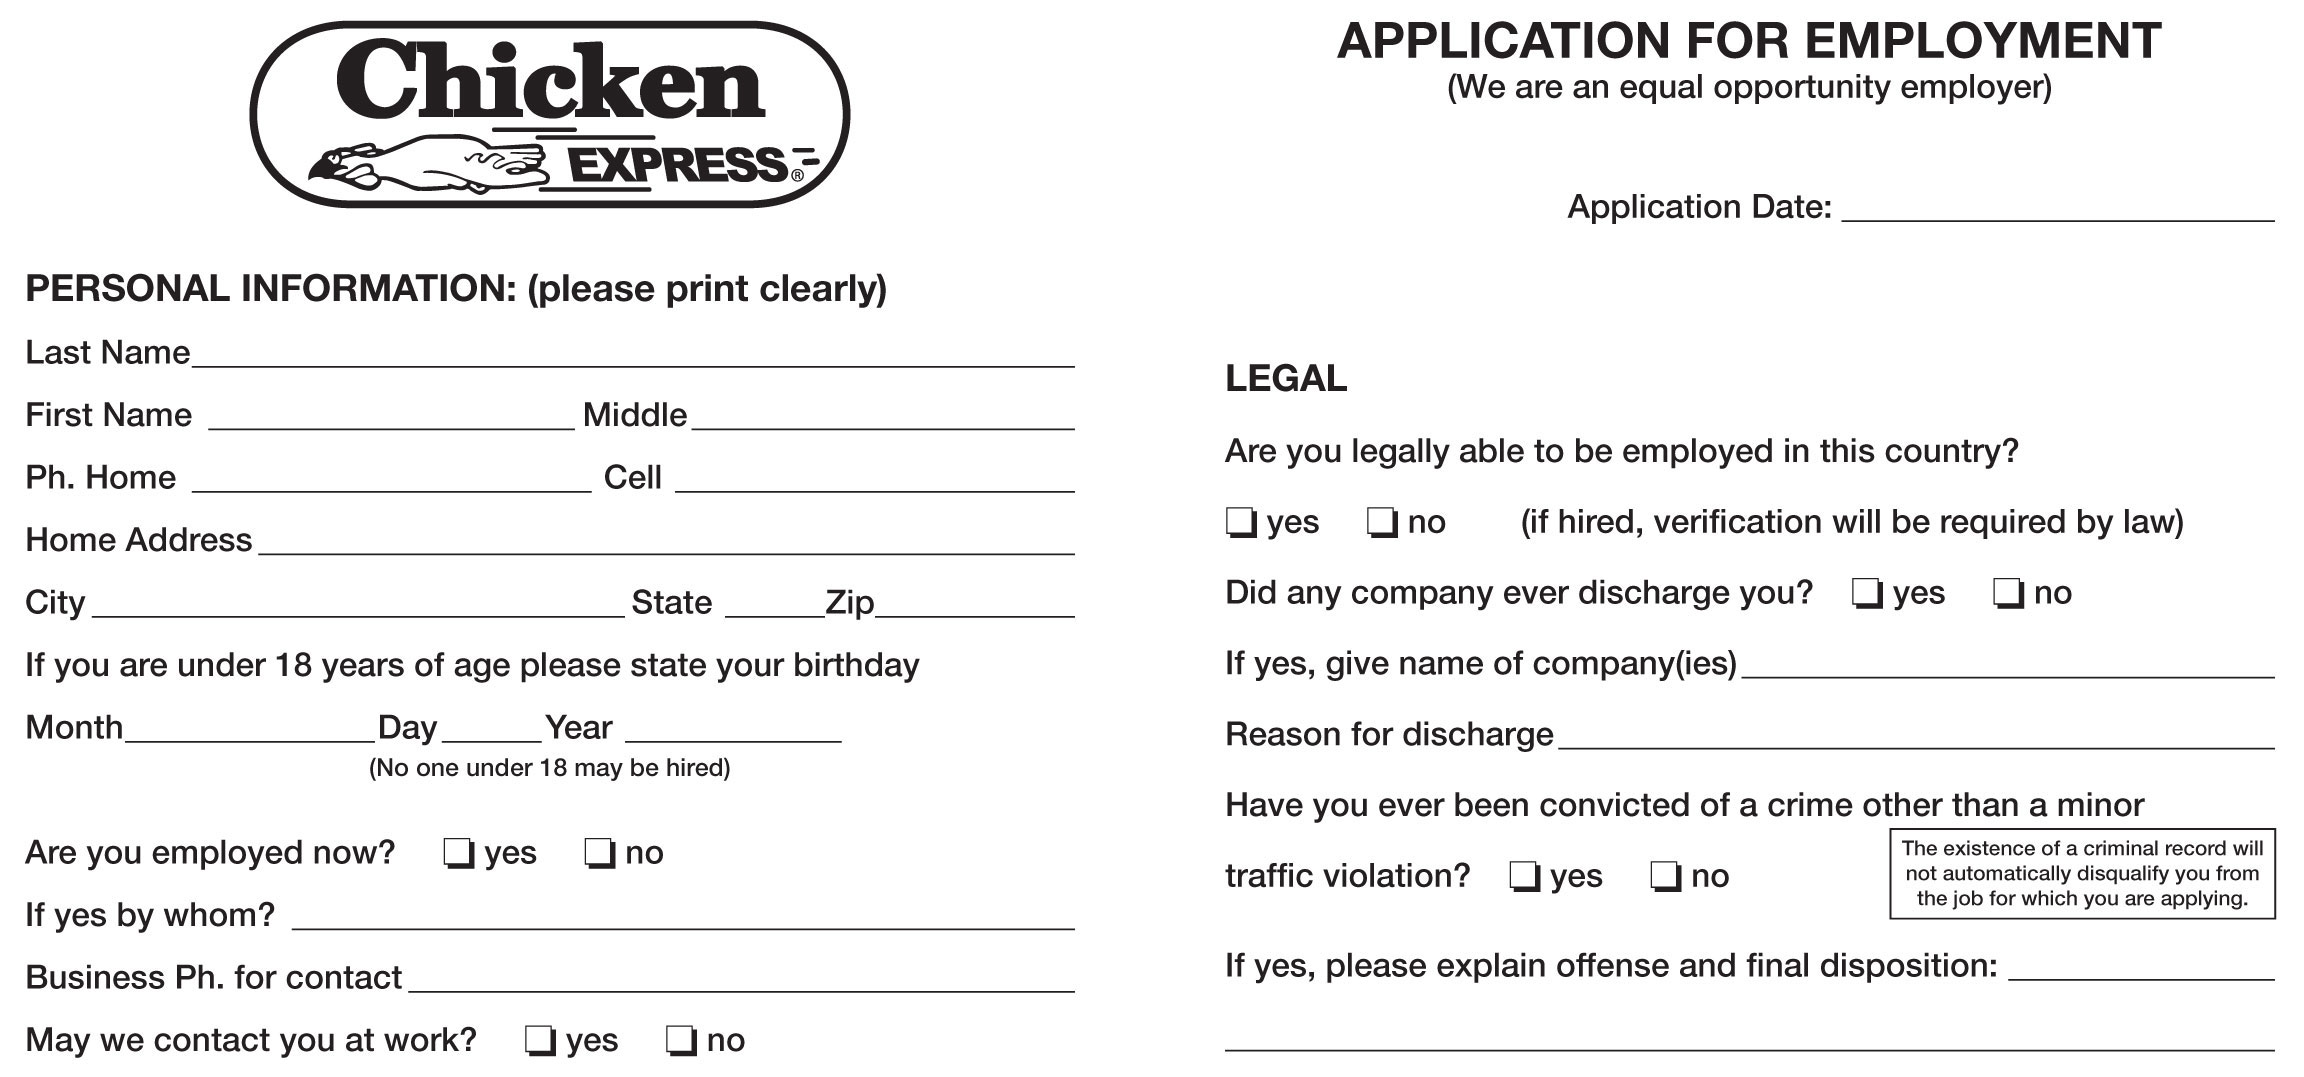 Chicken Express Job Application